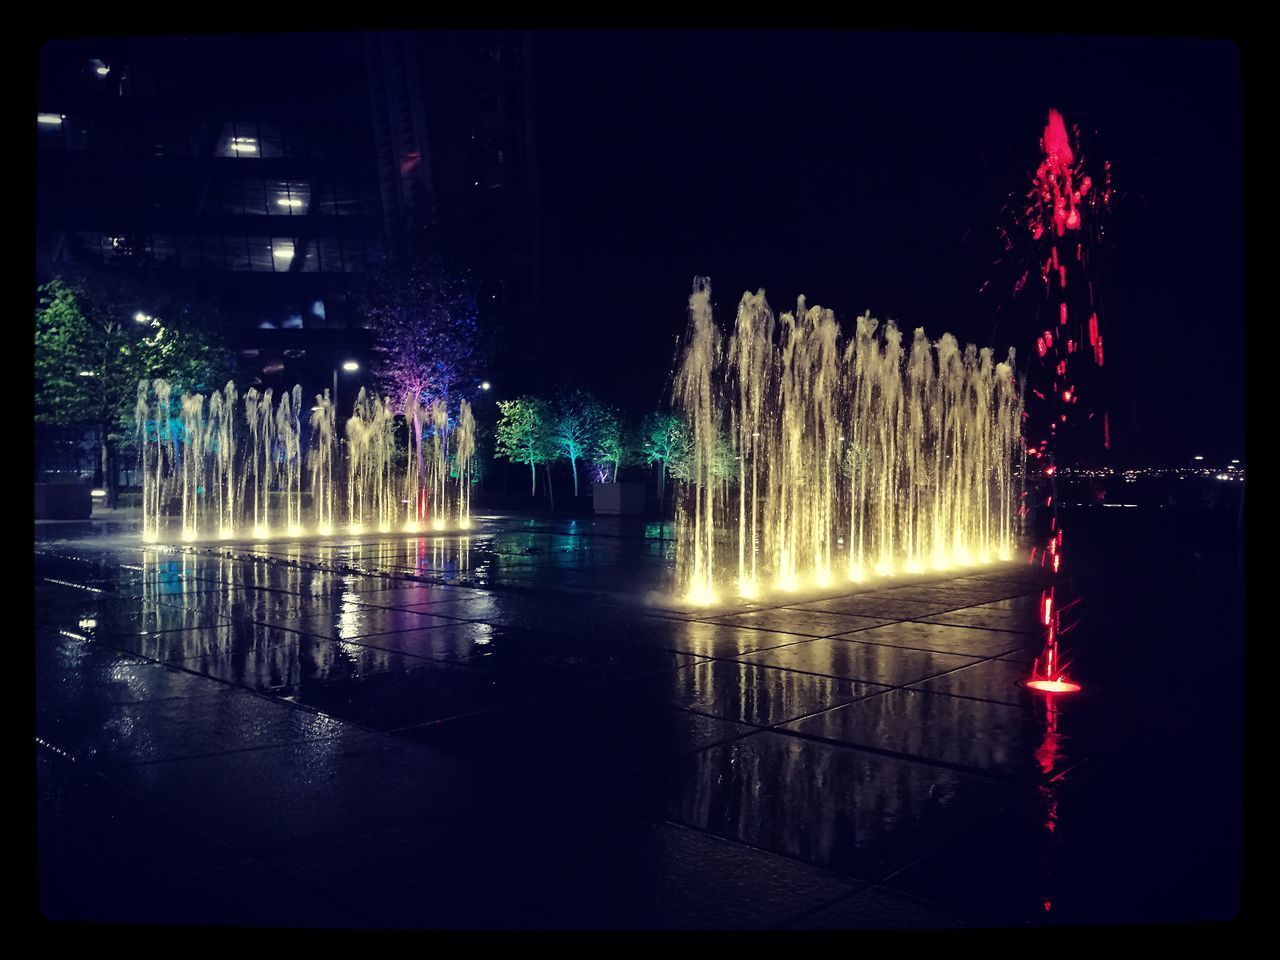 night, illuminated, fountain, transfer print, motion, celebration, water, lighting equipment, city, spraying, building exterior, glowing, multi colored, decoration, modern, outdoors, event, splashing, exploding, tourism